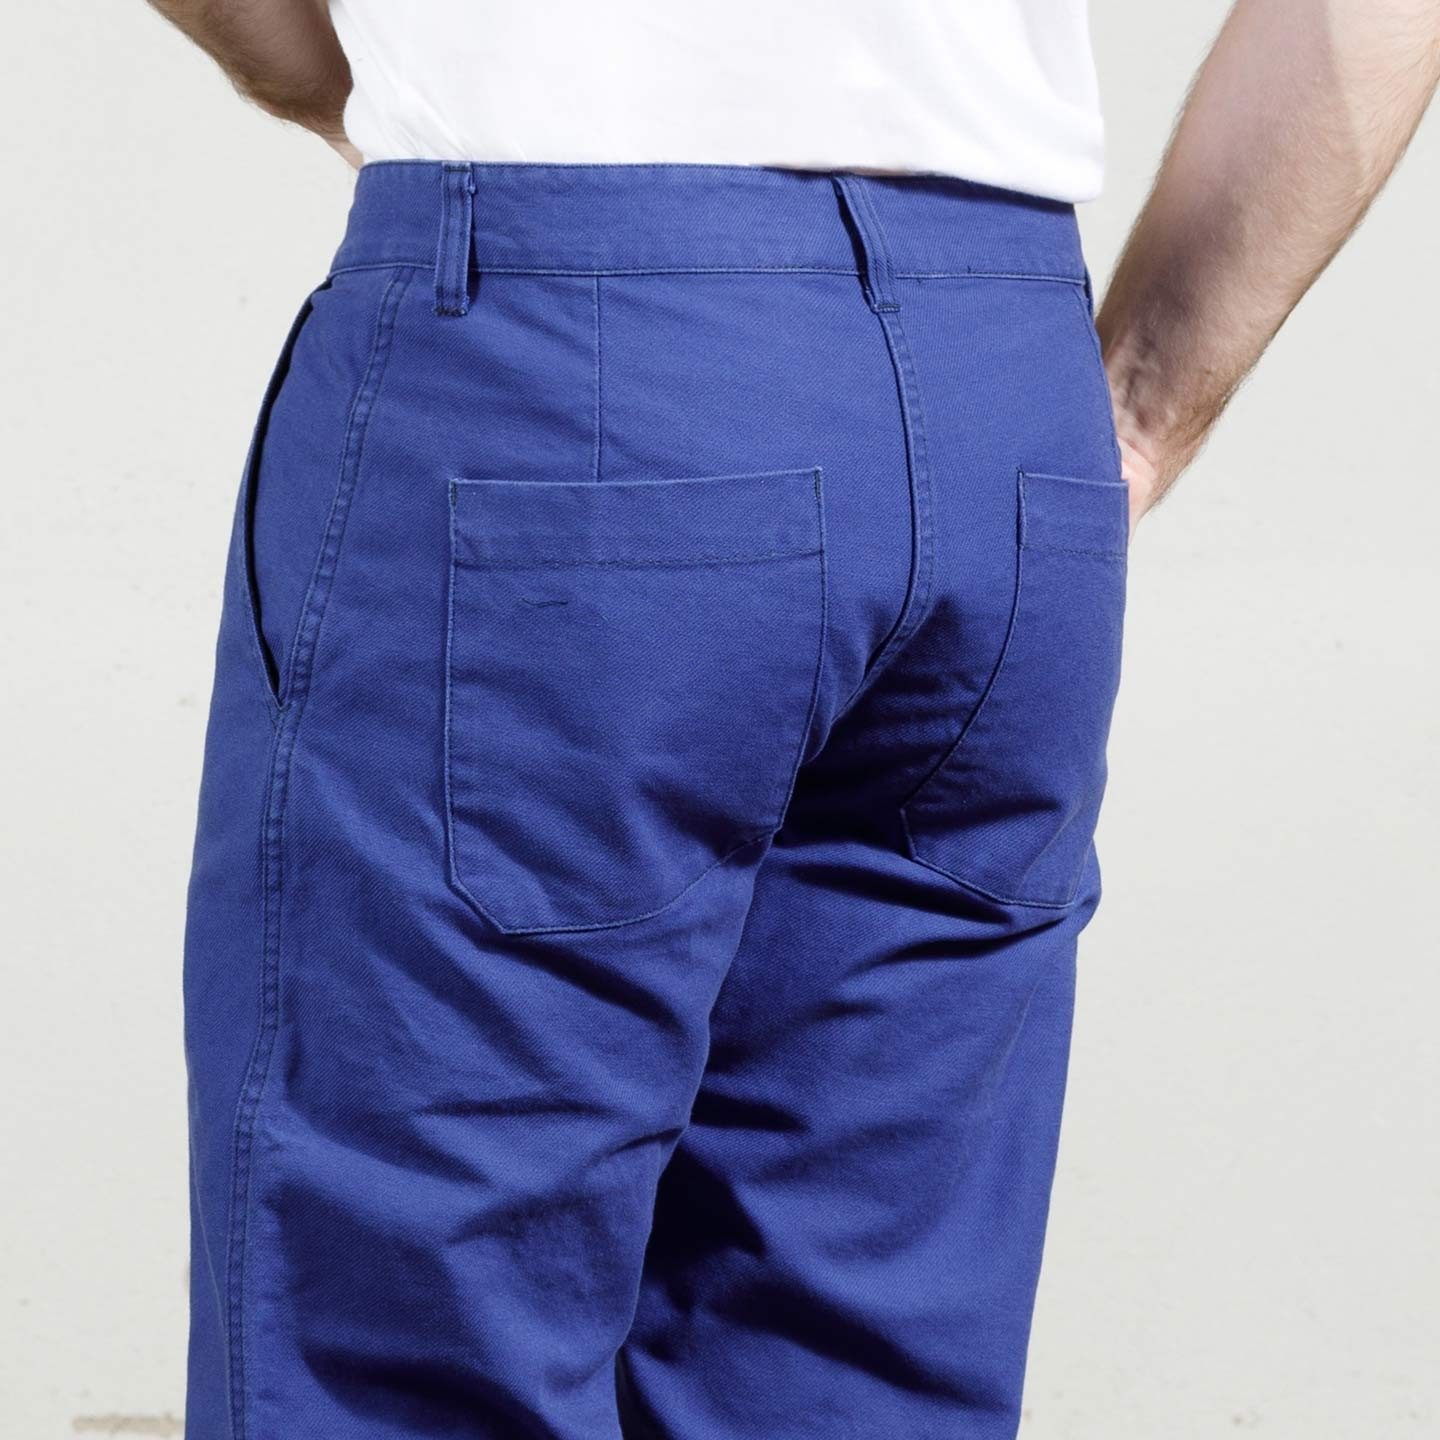 Workwear click clack hairgrip organic pants 1G/264 hydrone